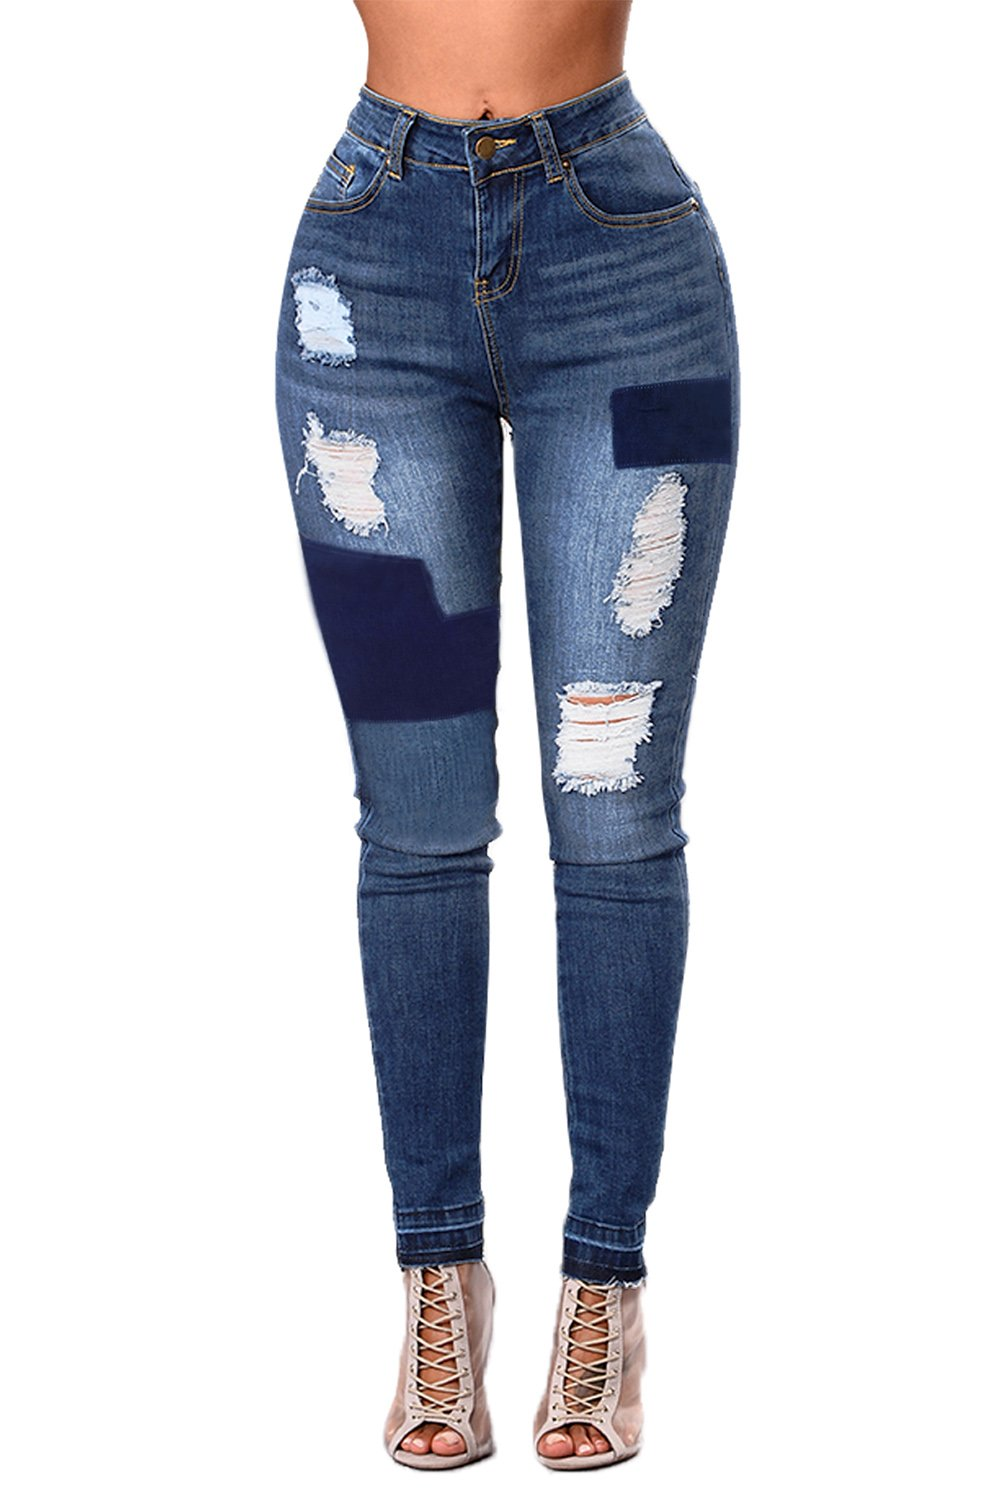 Blue Individual Patched Ripped Jeans